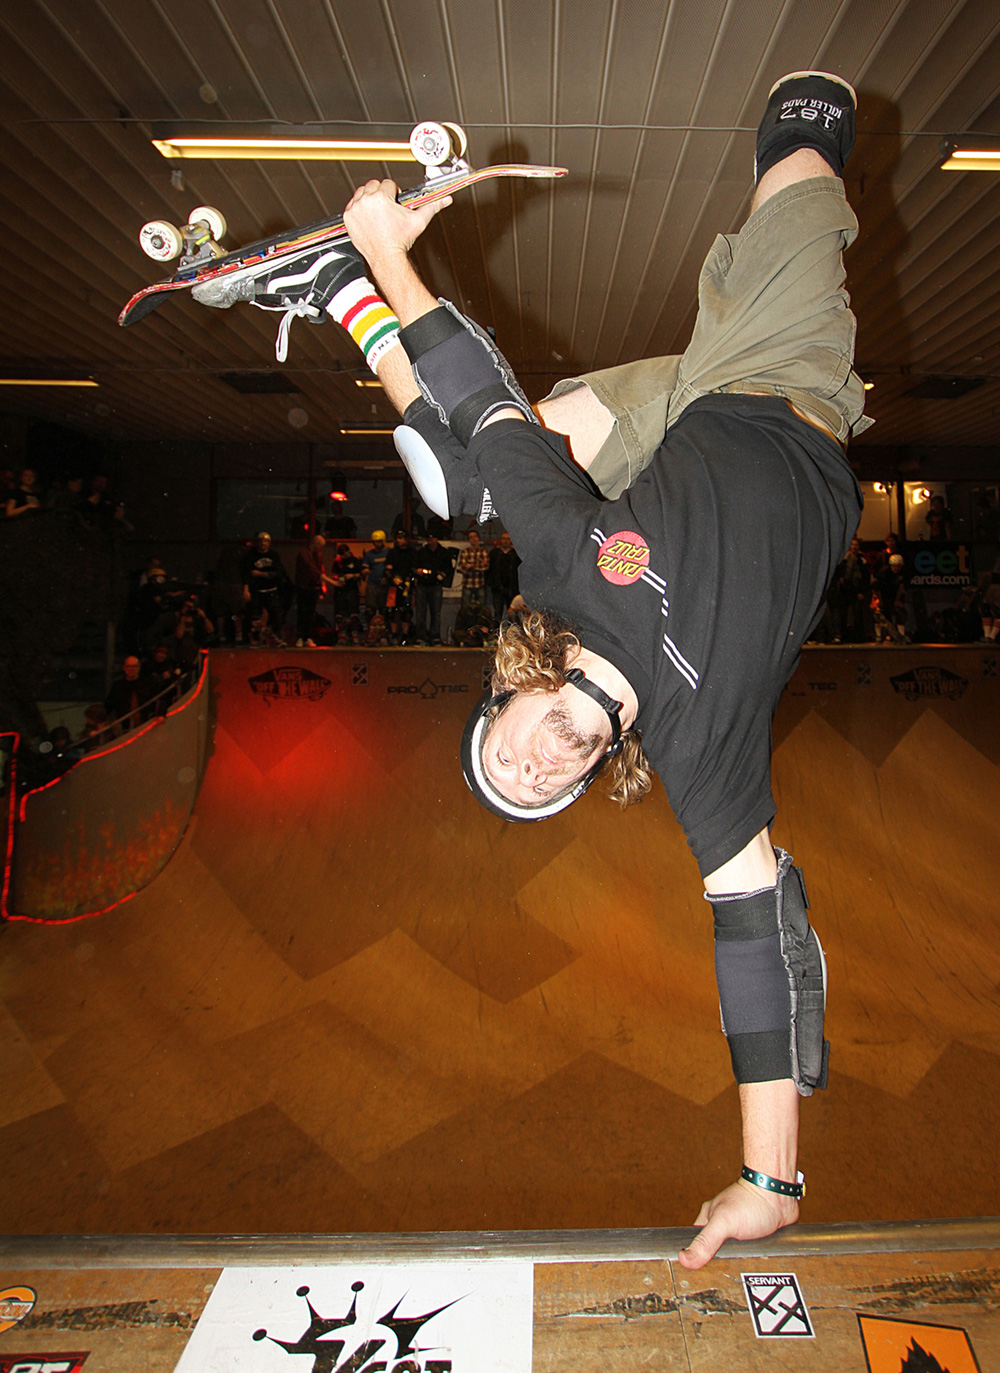 Jeff Hedges, one-foot invert